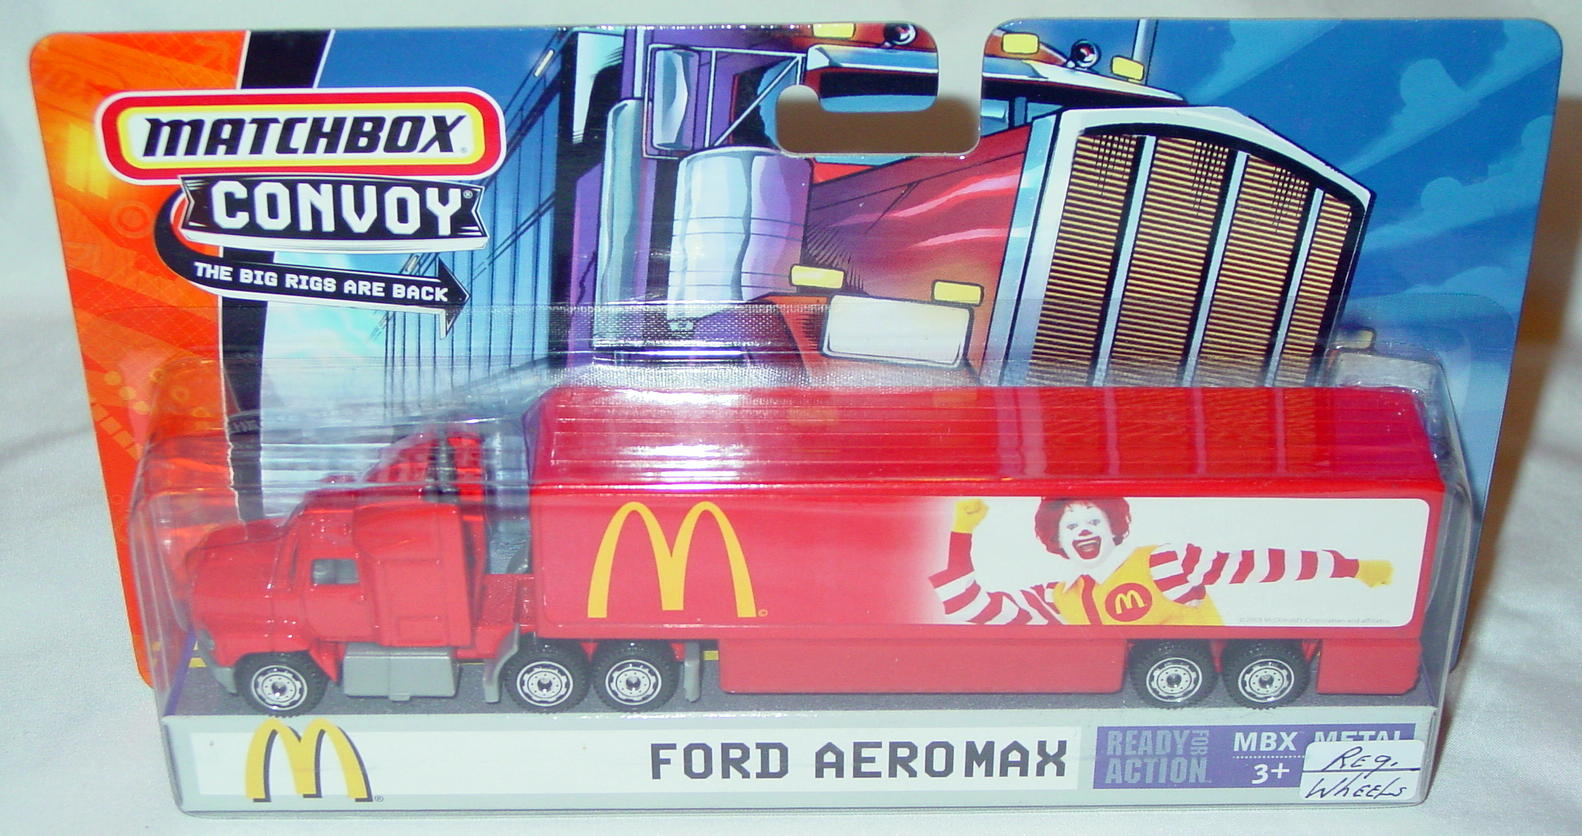 Convoy - 2005 Ford Aeromax Red MacDonalds Ronald 8-spk